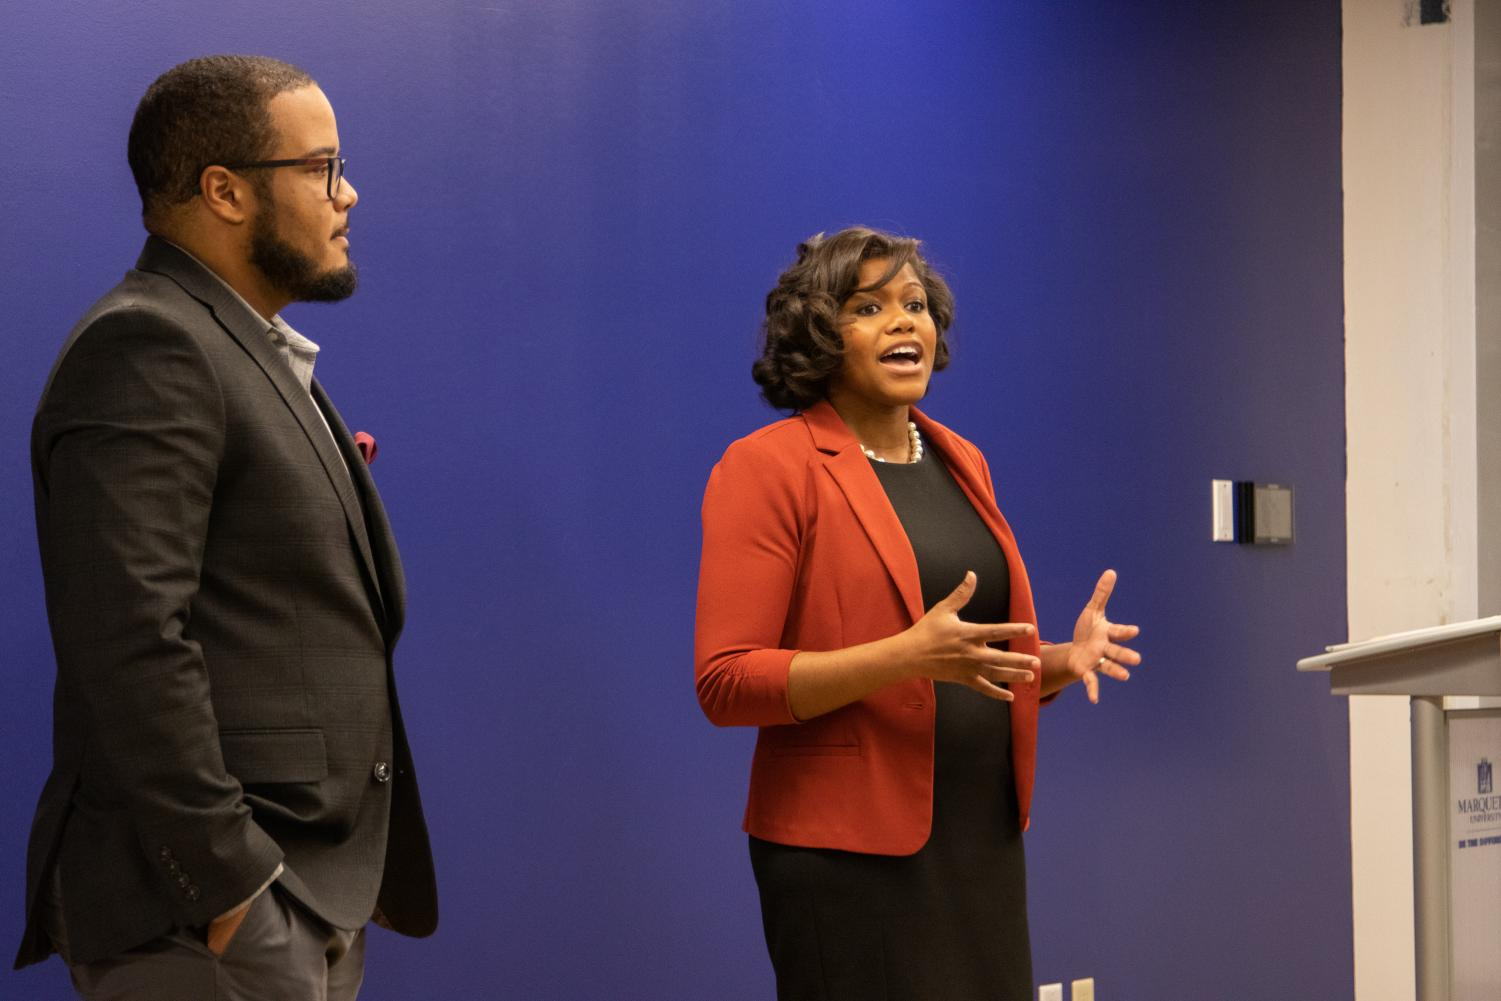 The event had a main focus on women, and Erica Wright (right) said it is beneficial.